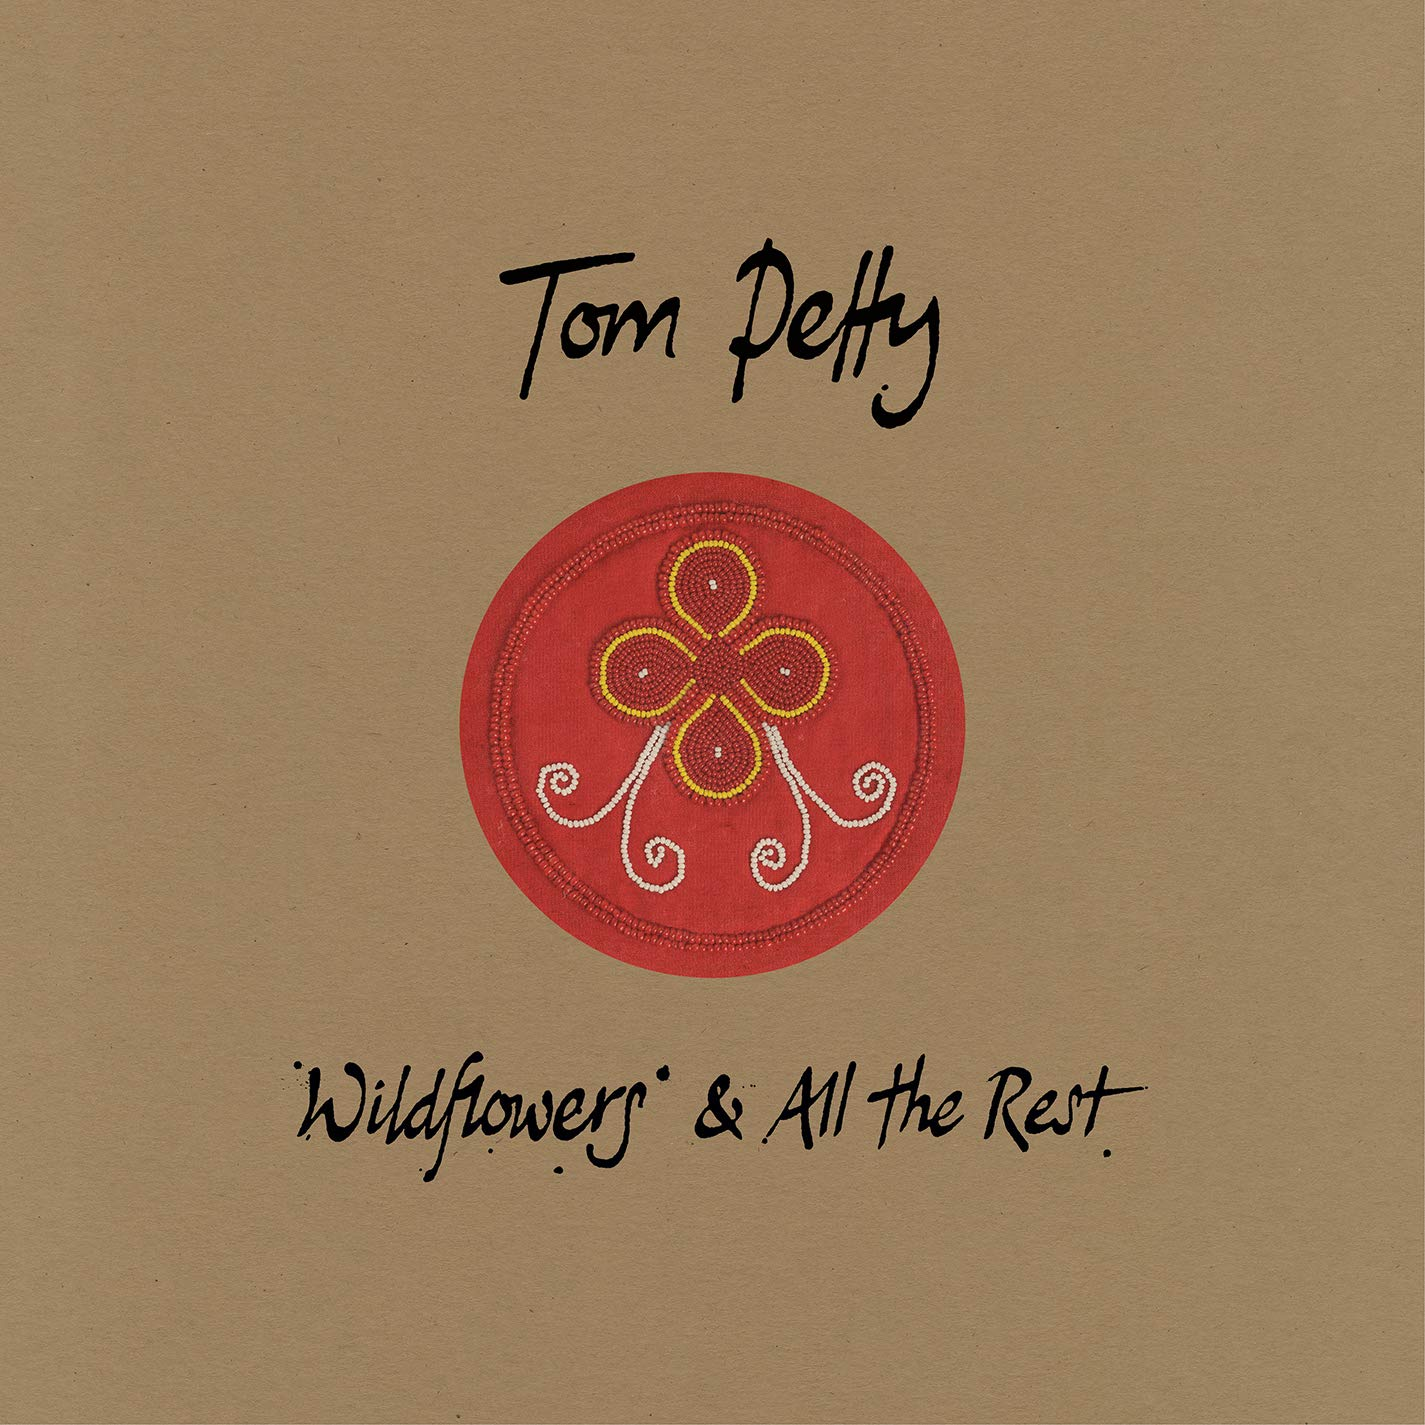 Tom Petty: Wildflowers & All the Rest (Deluxe Edition) - Spectrum Culture